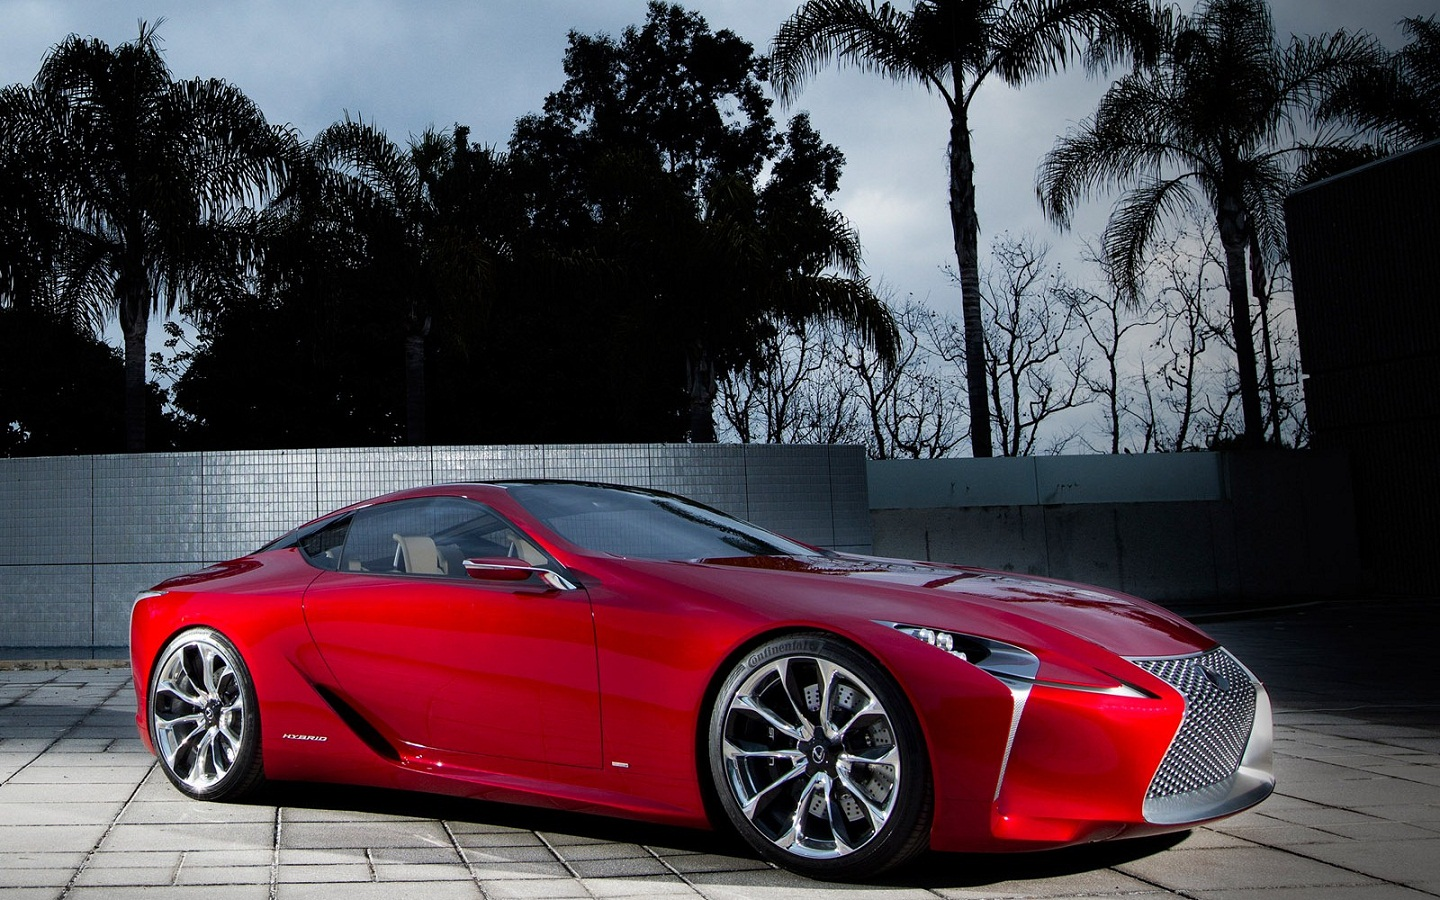 2019 Lexus Sport Coupe Concept photo - 4